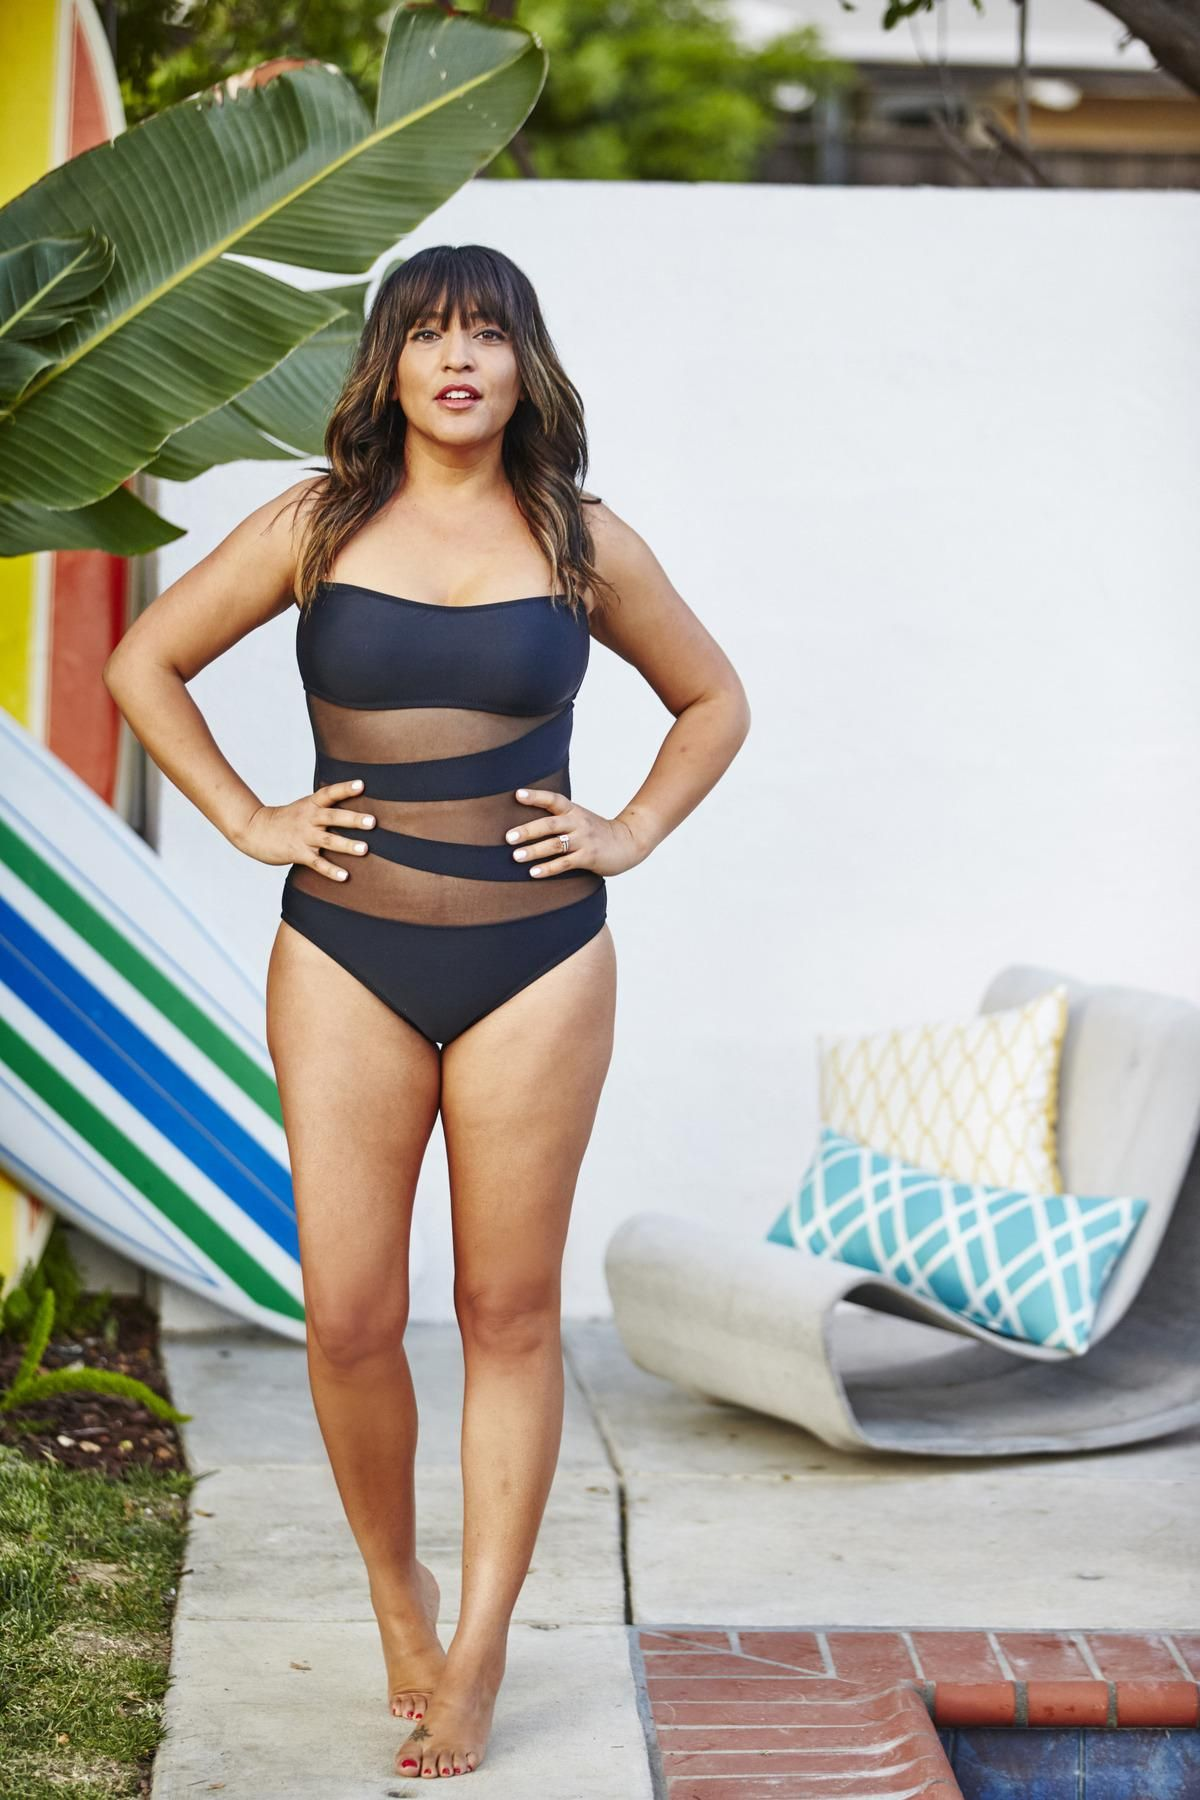 Target tells women: love your bodies | Target, Bodies and Swimsuits